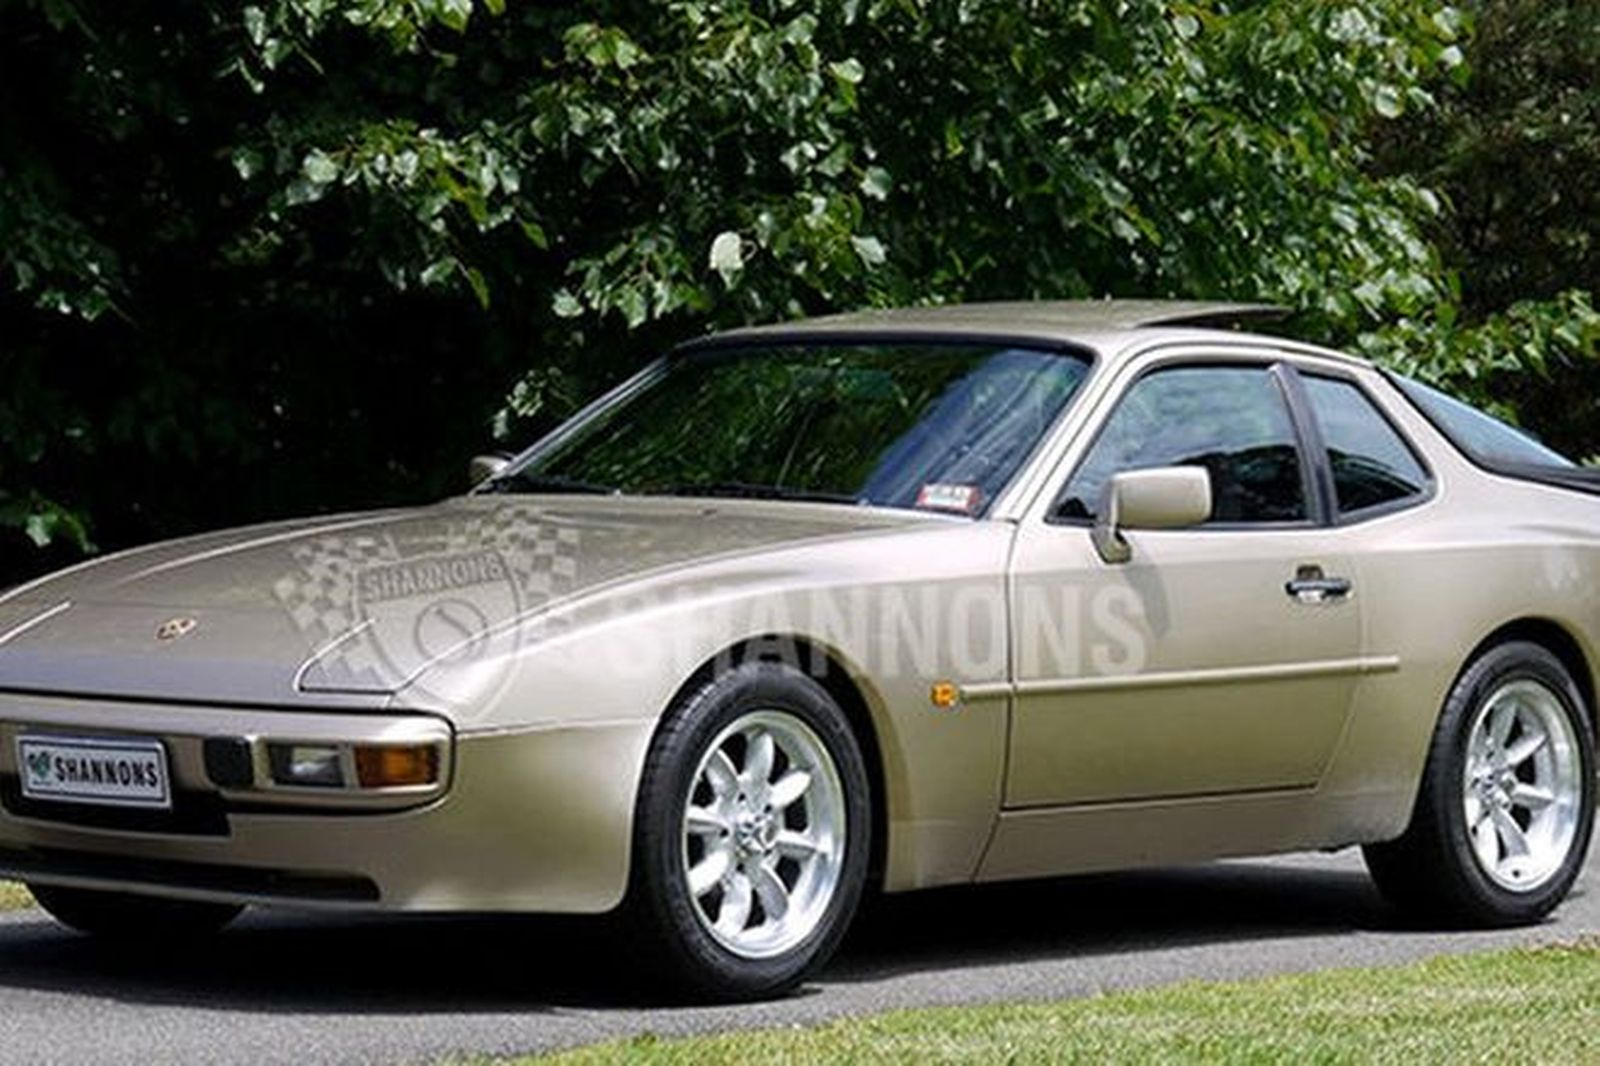 sold: porsche 944 coupe auctions - lot 21 - shannons